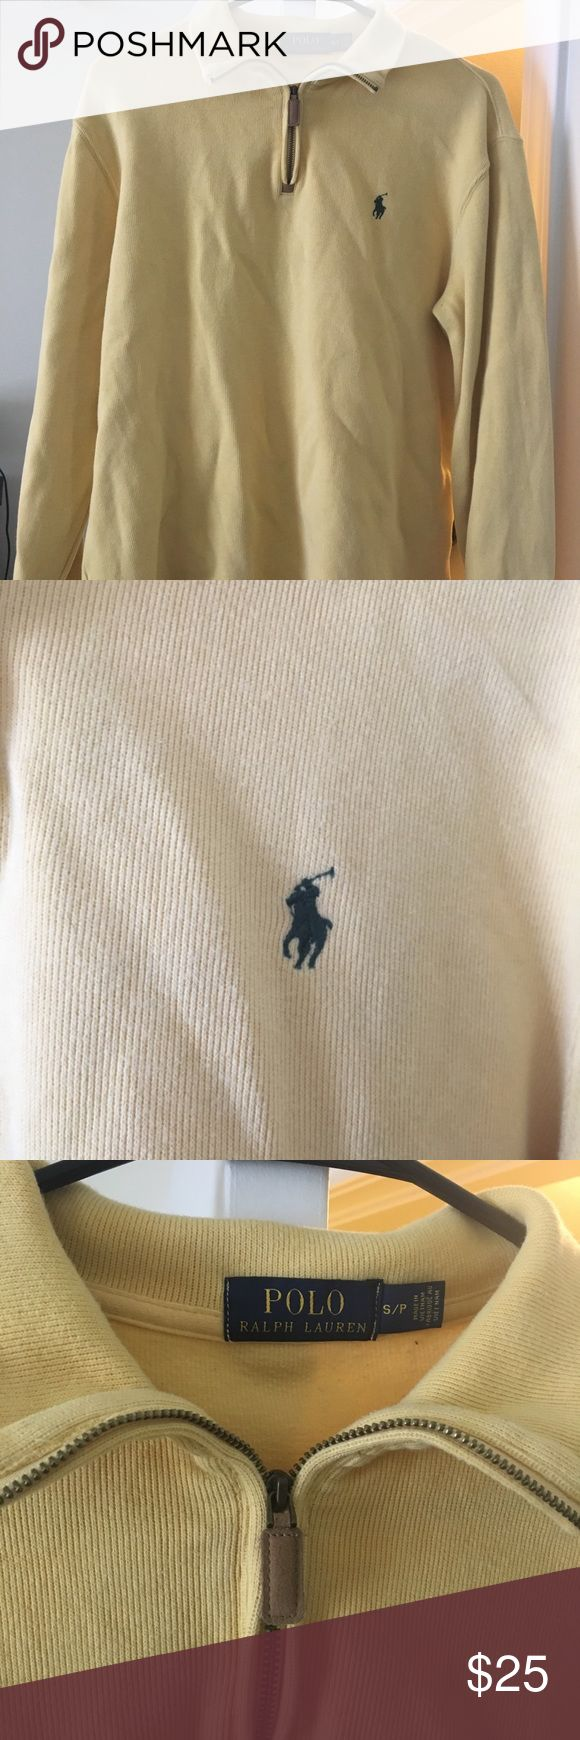 Men's small yellow polo pullover Men's yellow pullover. Gently used. Size small Polo by Ralph Lauren Jackets & Coats Lightweight & Shirt Jackets